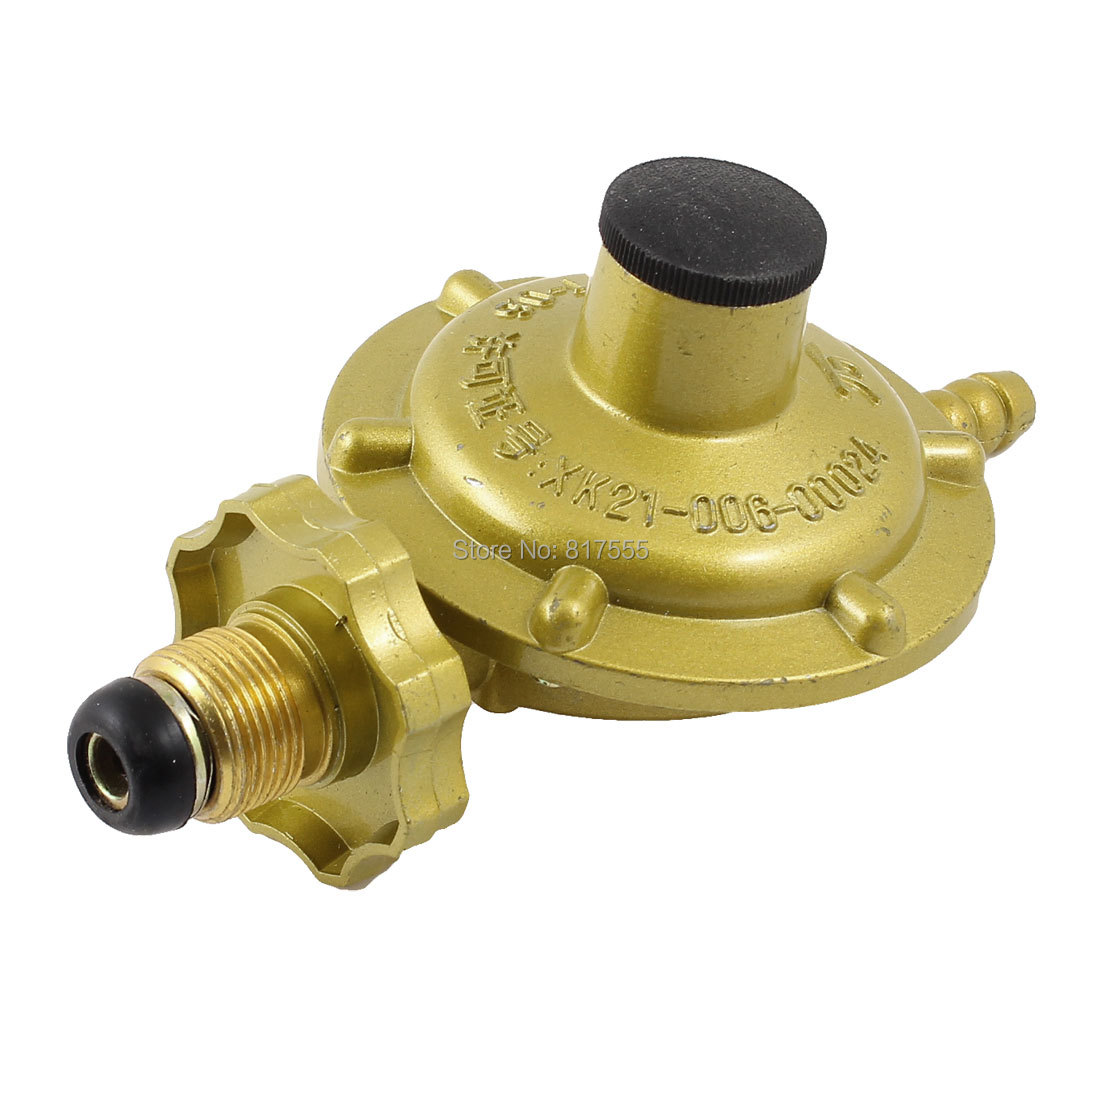 0.03 - 1.56Mpa Home One Inlet One Outlet Liquefied LGP Compressed Gas Pressure Regulator Yellow Gauge 21.6mm Diameter 10mm(China (Mainland))